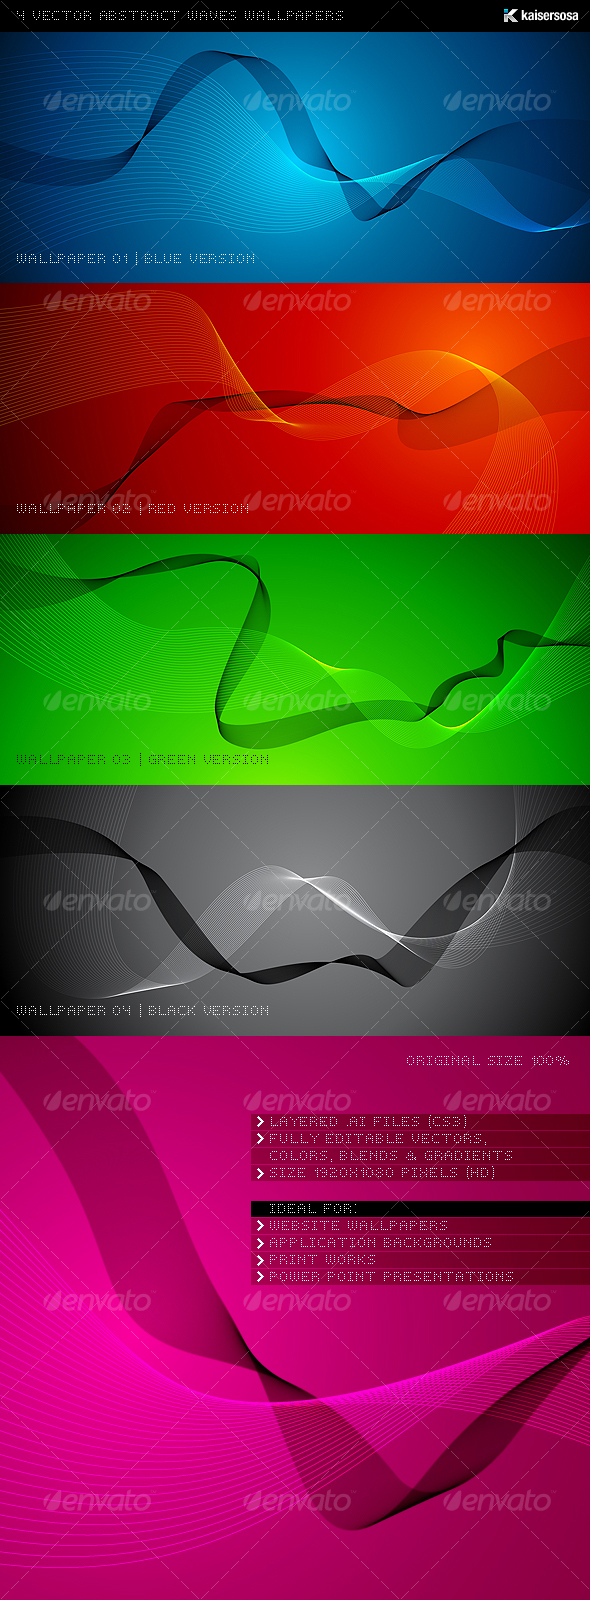 4 Vector Abstract Waves Wallpapers - Abstract Backgrounds